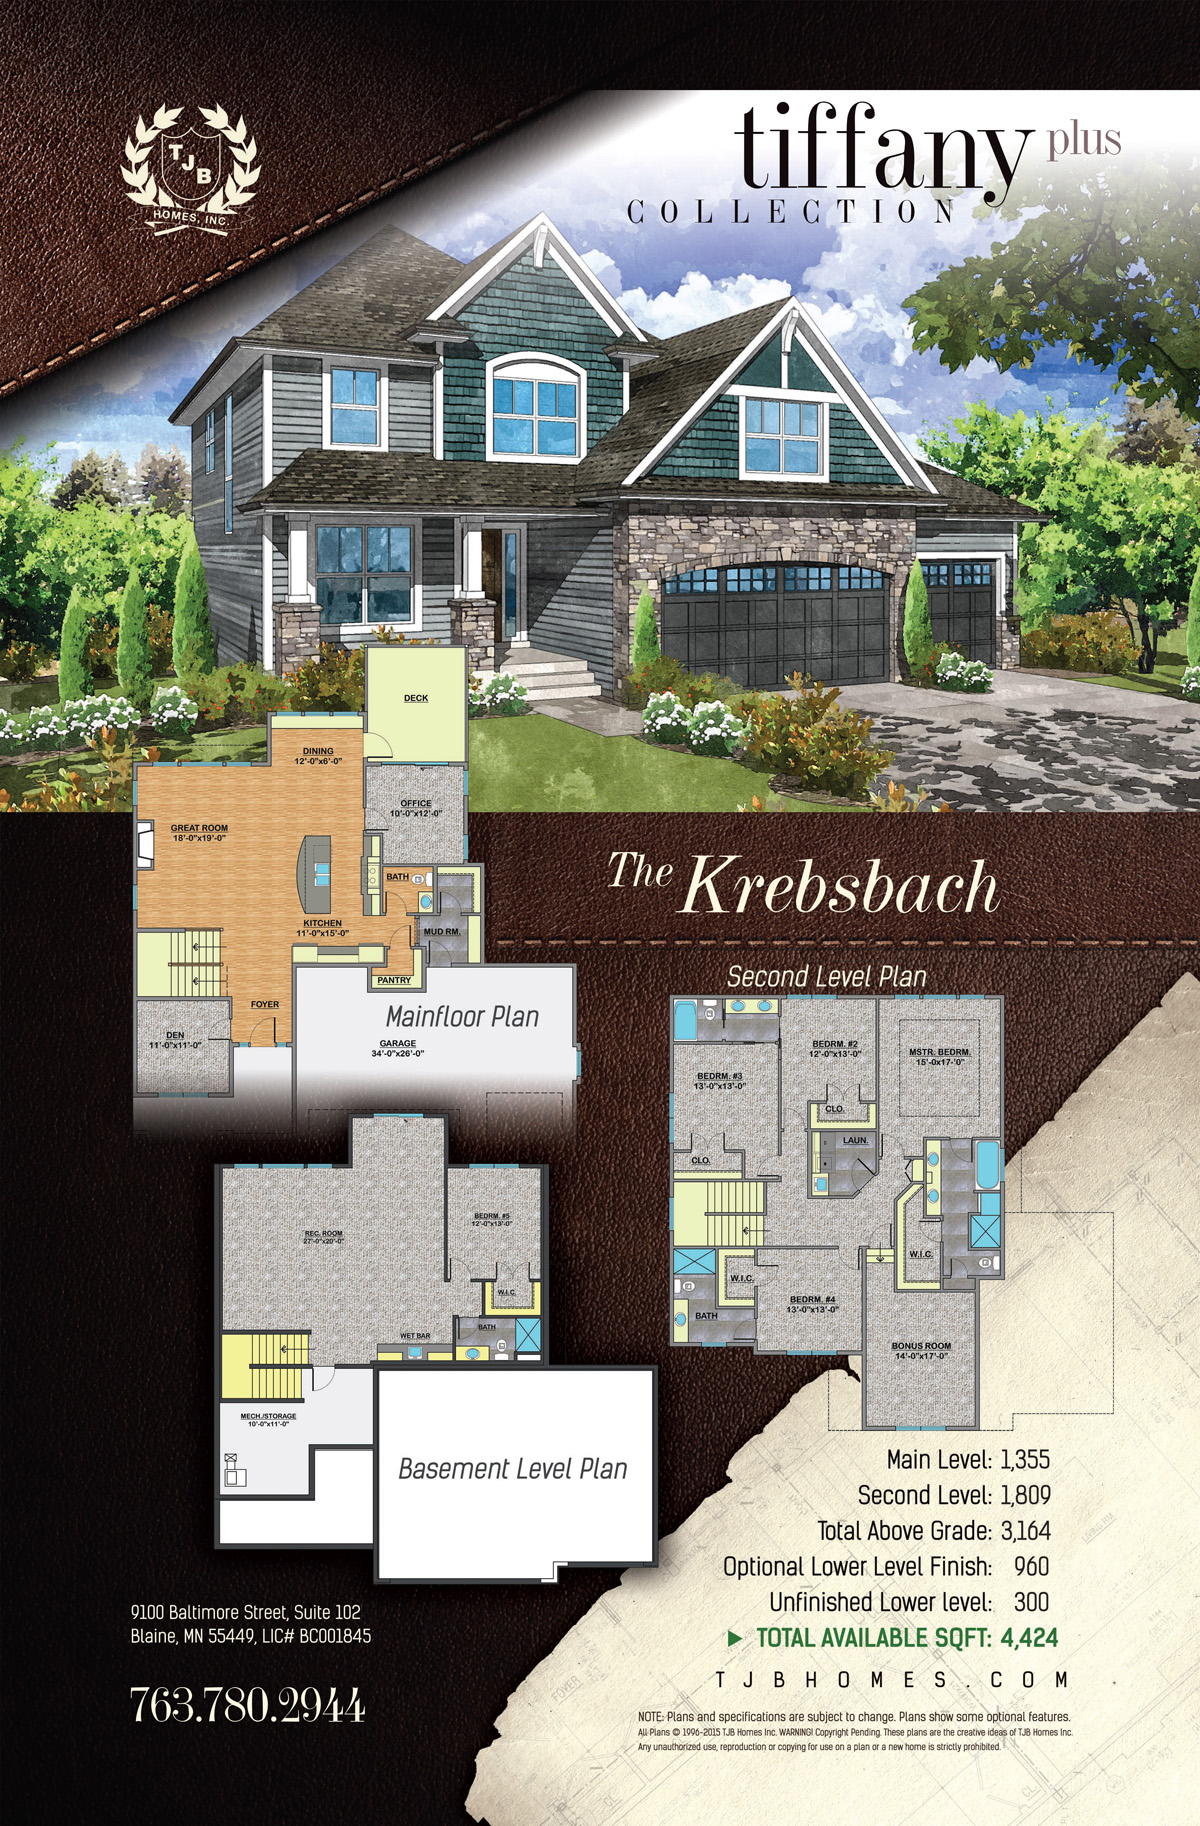 Tiffany Plus Collection Home Plans - The Krebsbach